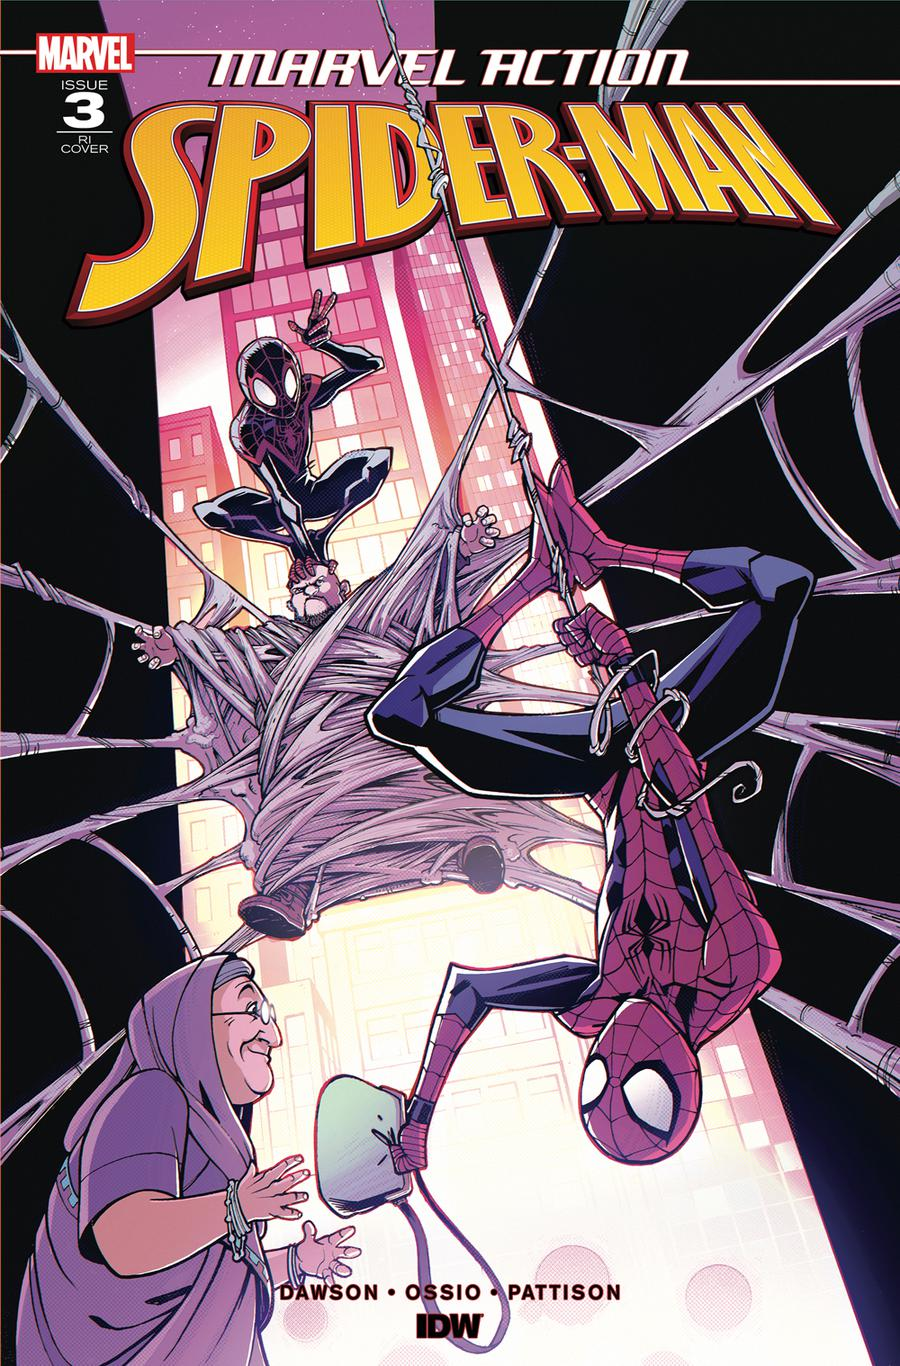 Marvel Action Spider-Man #3 Cover B Incentive Nick Roche Variant Cover